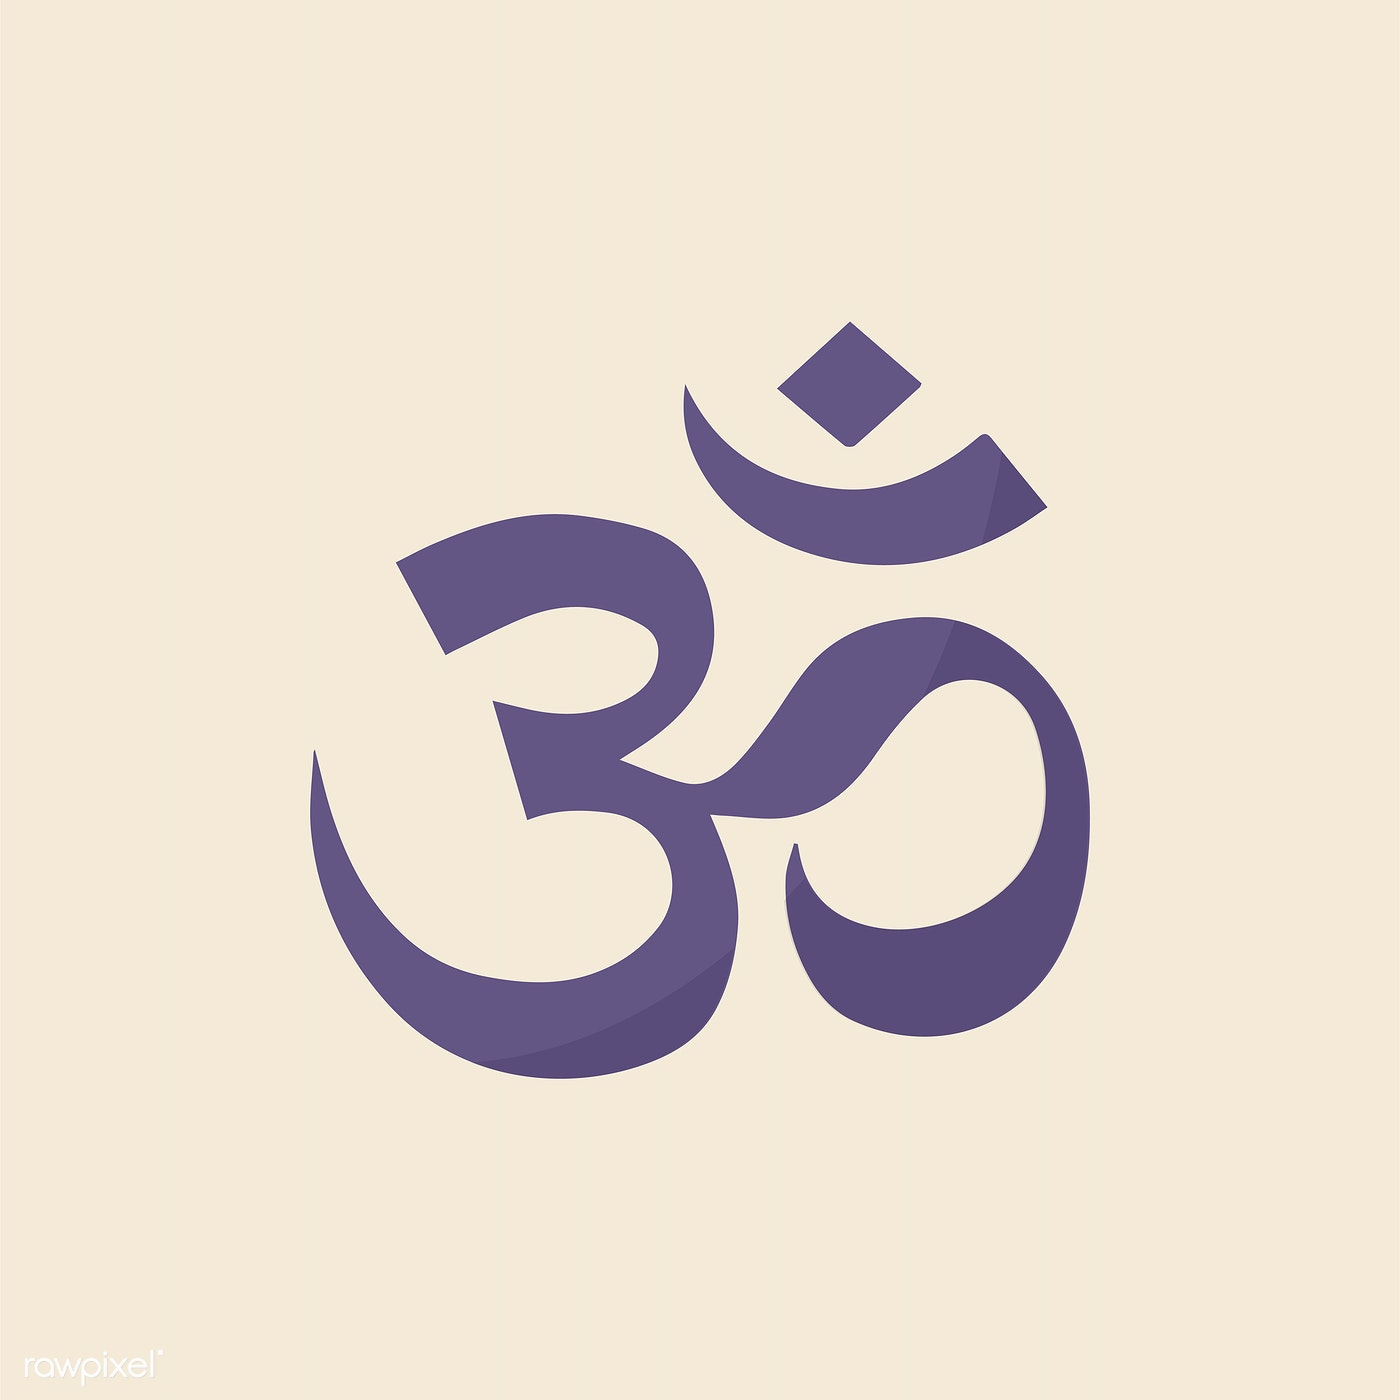 Illustraition Of The Indian Om Symbol By Ningzk V Id 412529